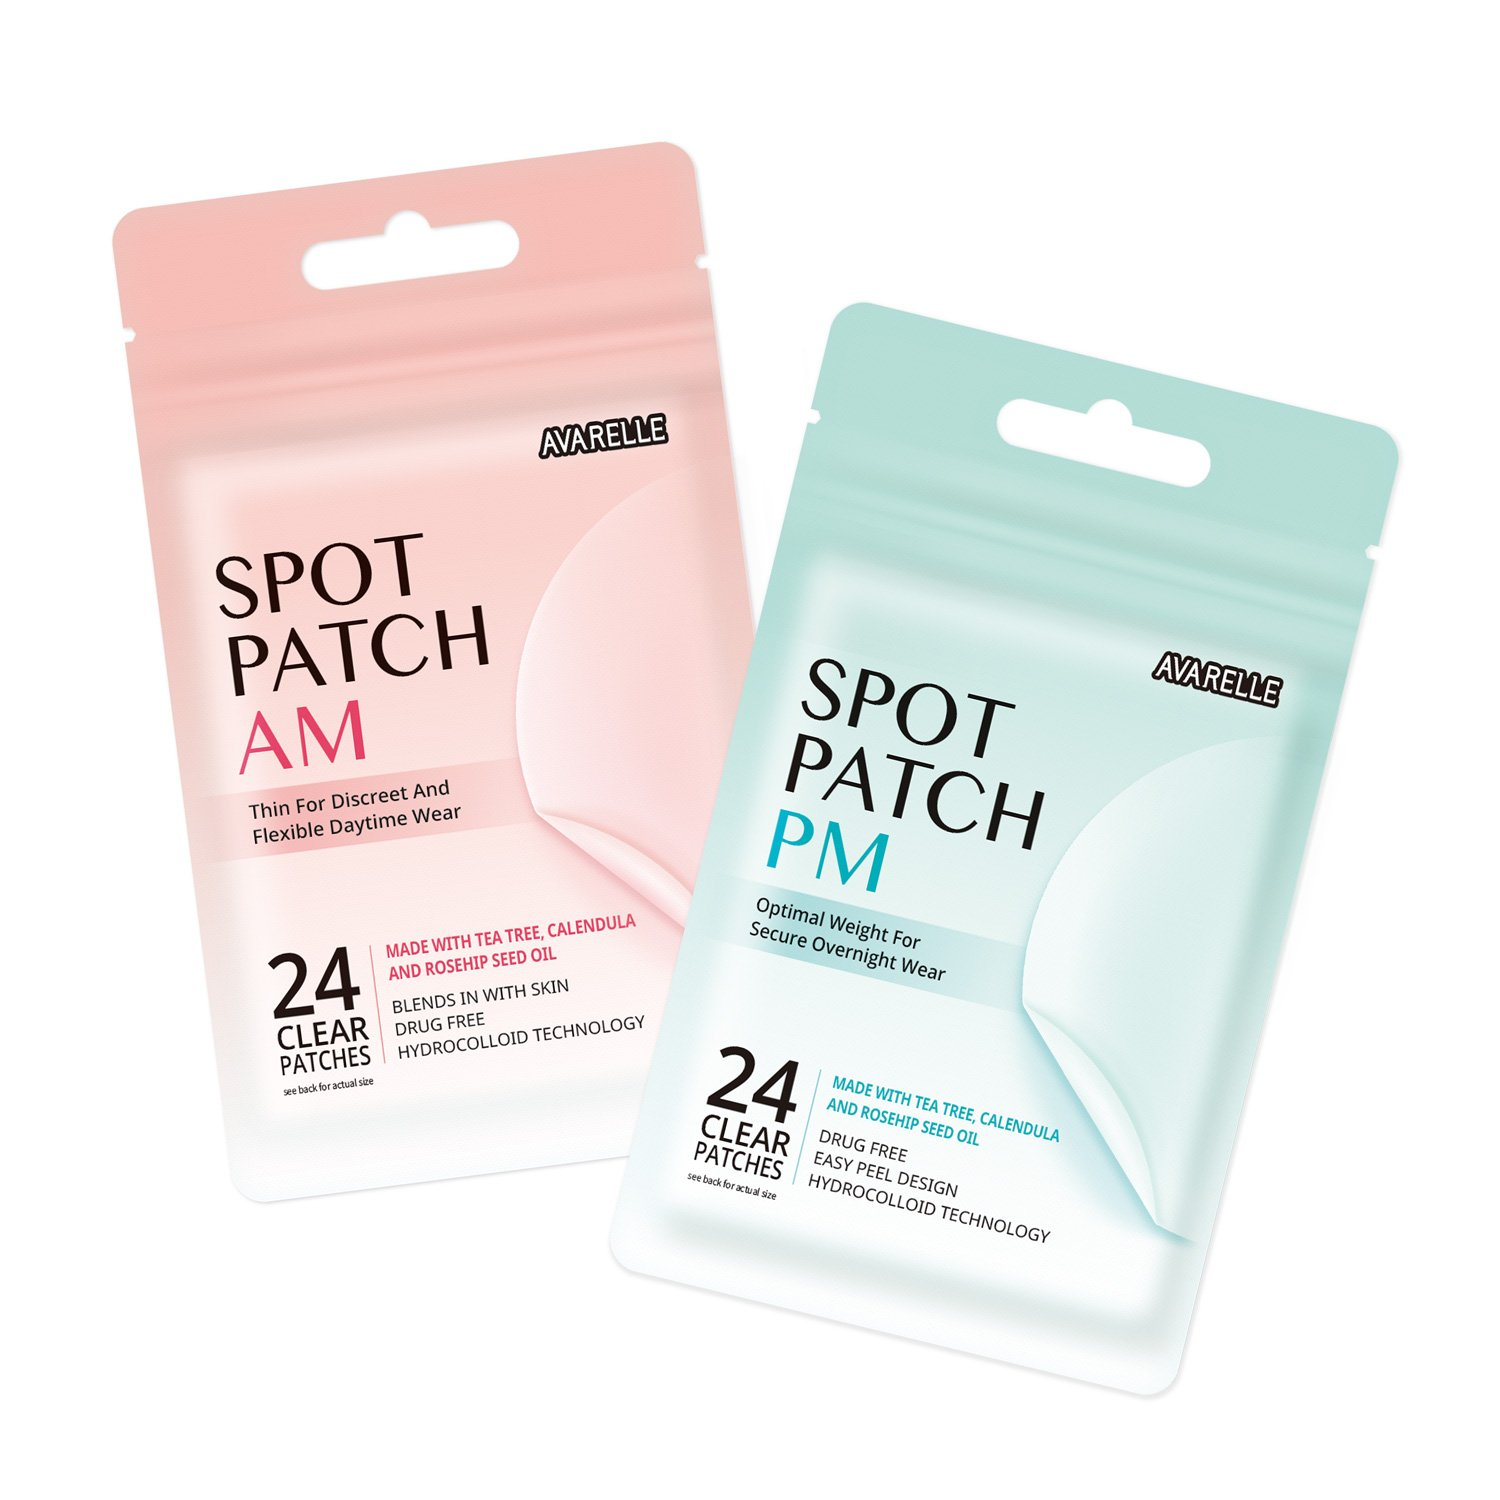 Acne Spot Patch AM+PM Daytime Absorbing Cover Patch Hydrocolloid, Tea Tree Calendula, Rosehip Seed Oil (AM+PM / 48 PATCHES) by AVARELLE